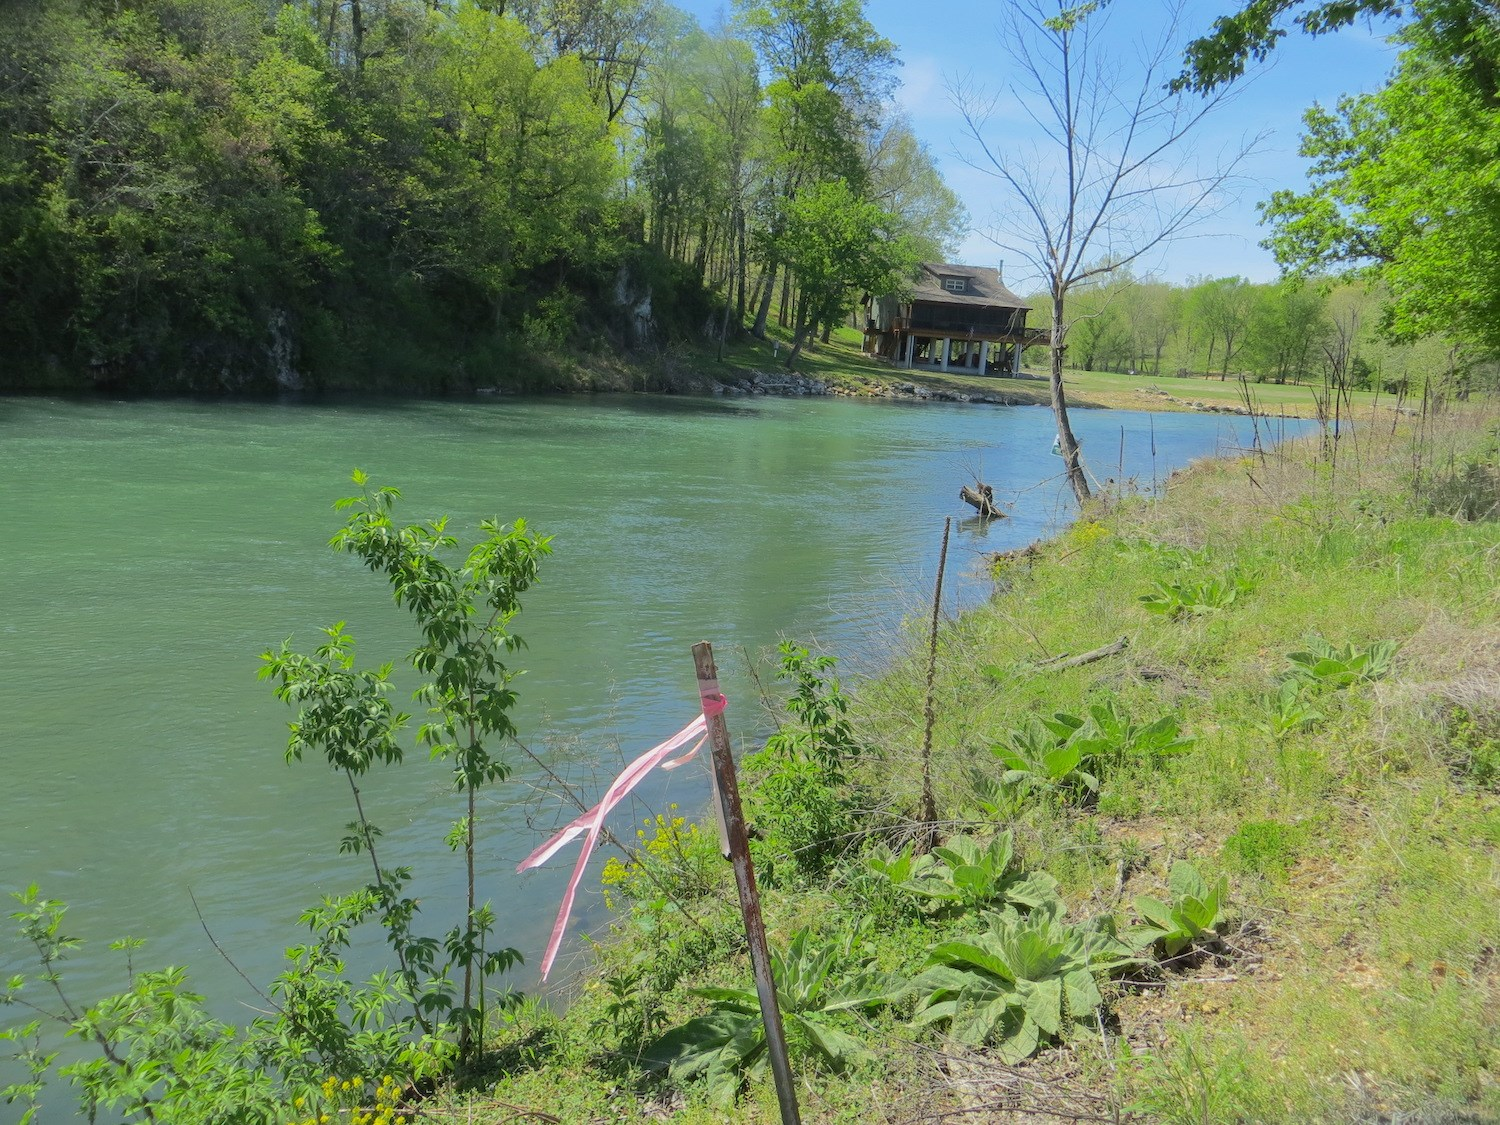 River Front Property For Sale in Mammoth Spring, AR